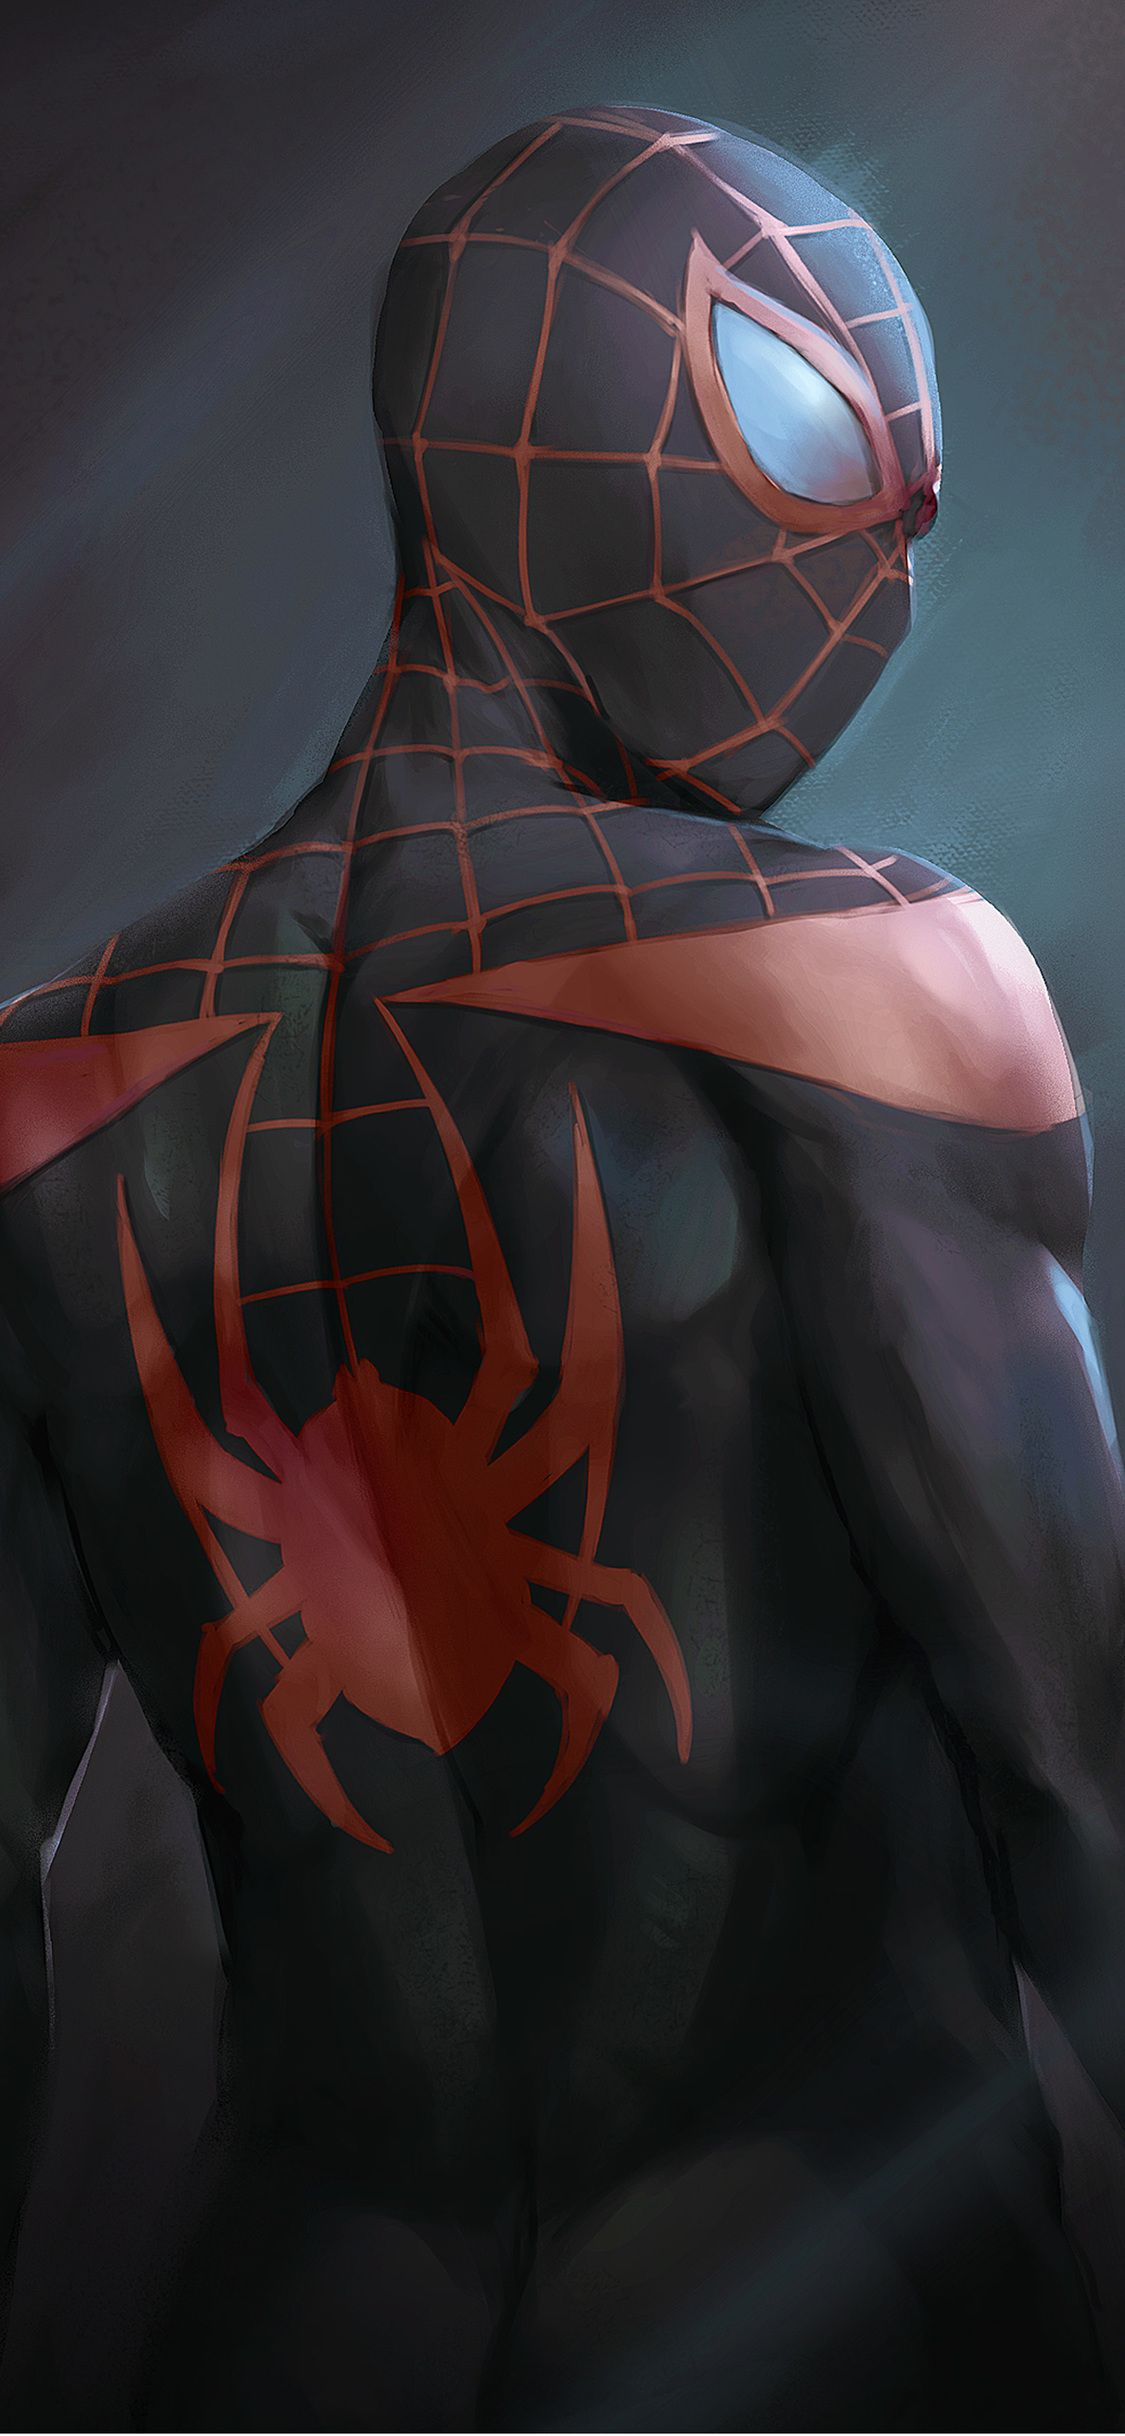 Spiderman IPhone Backgrounds Cool backgrounds in 2020